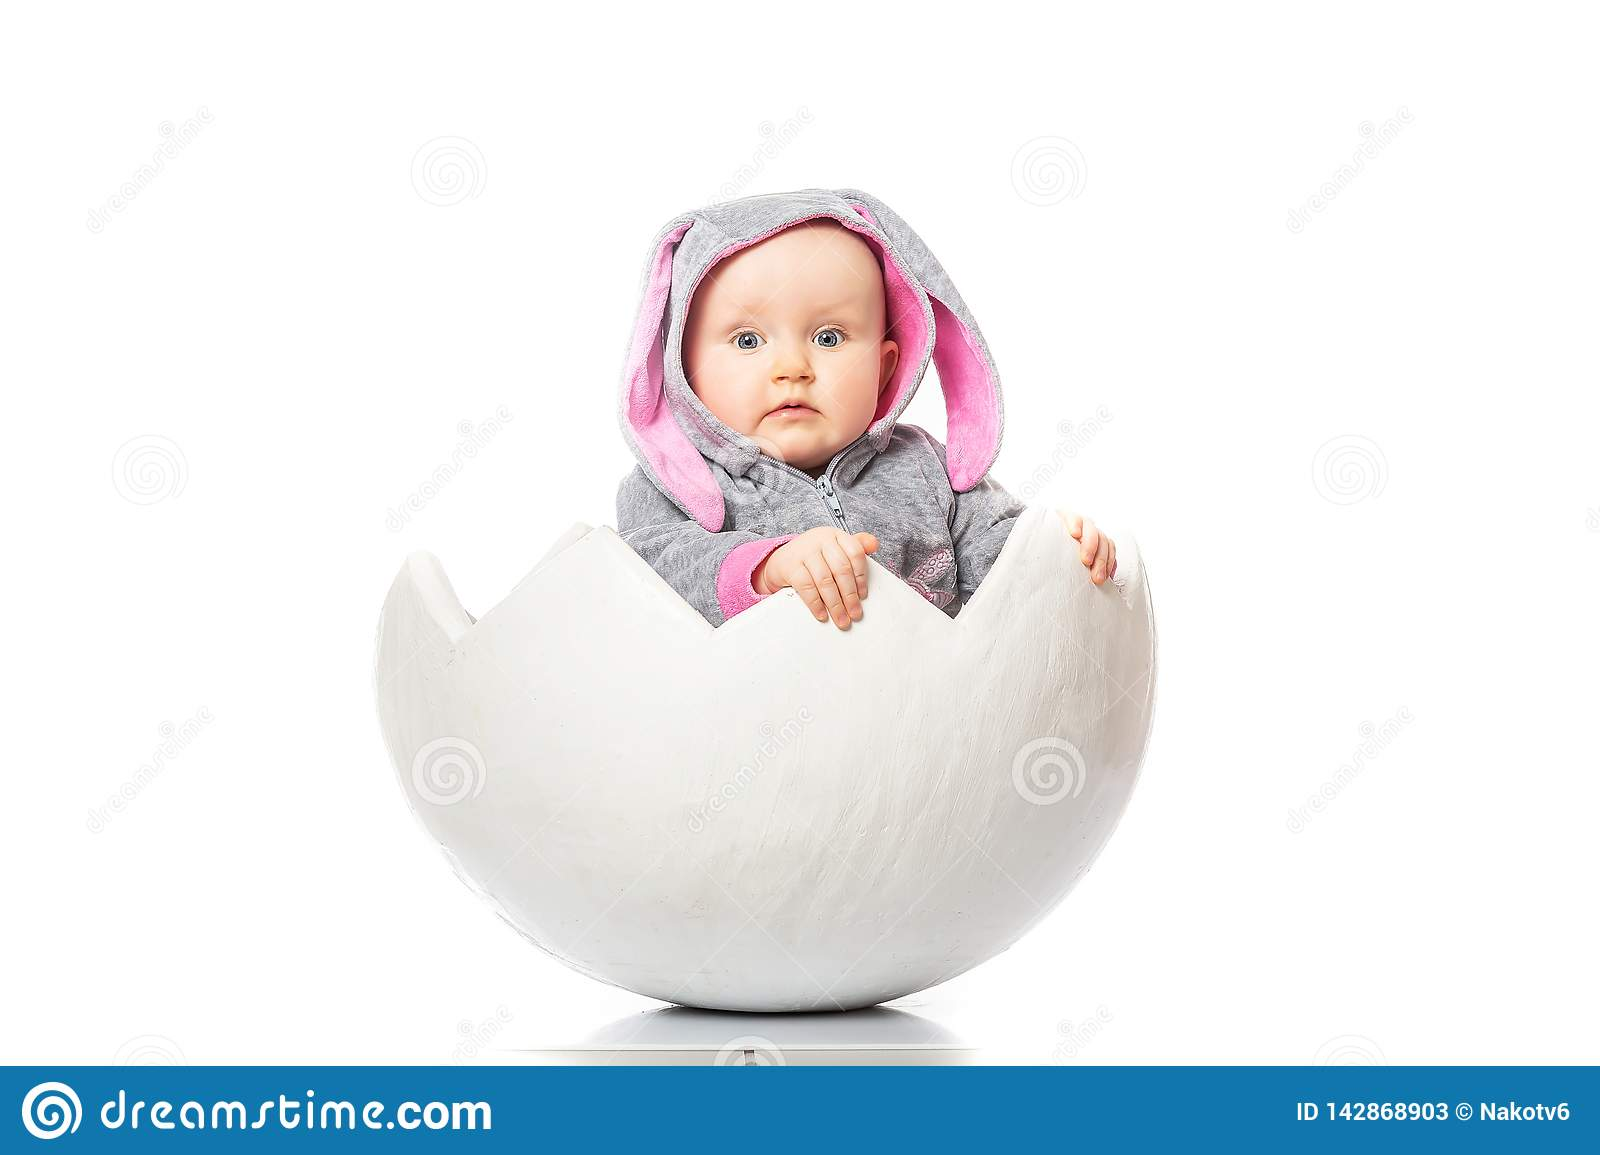 Kinder Egg Chair.Baby In A Bunny Costume In Egg On White Background Kinder